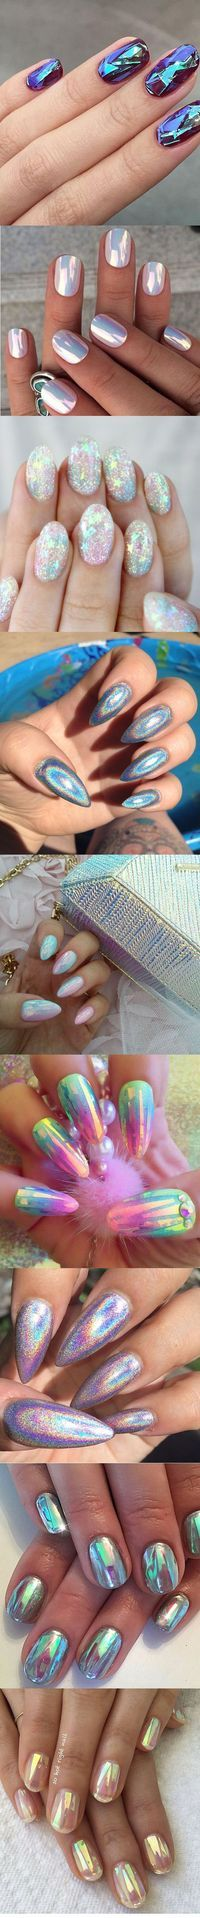 Holographic mermaid nails #manicure | ko-te.com by @evatornado |  http://miascollection.com